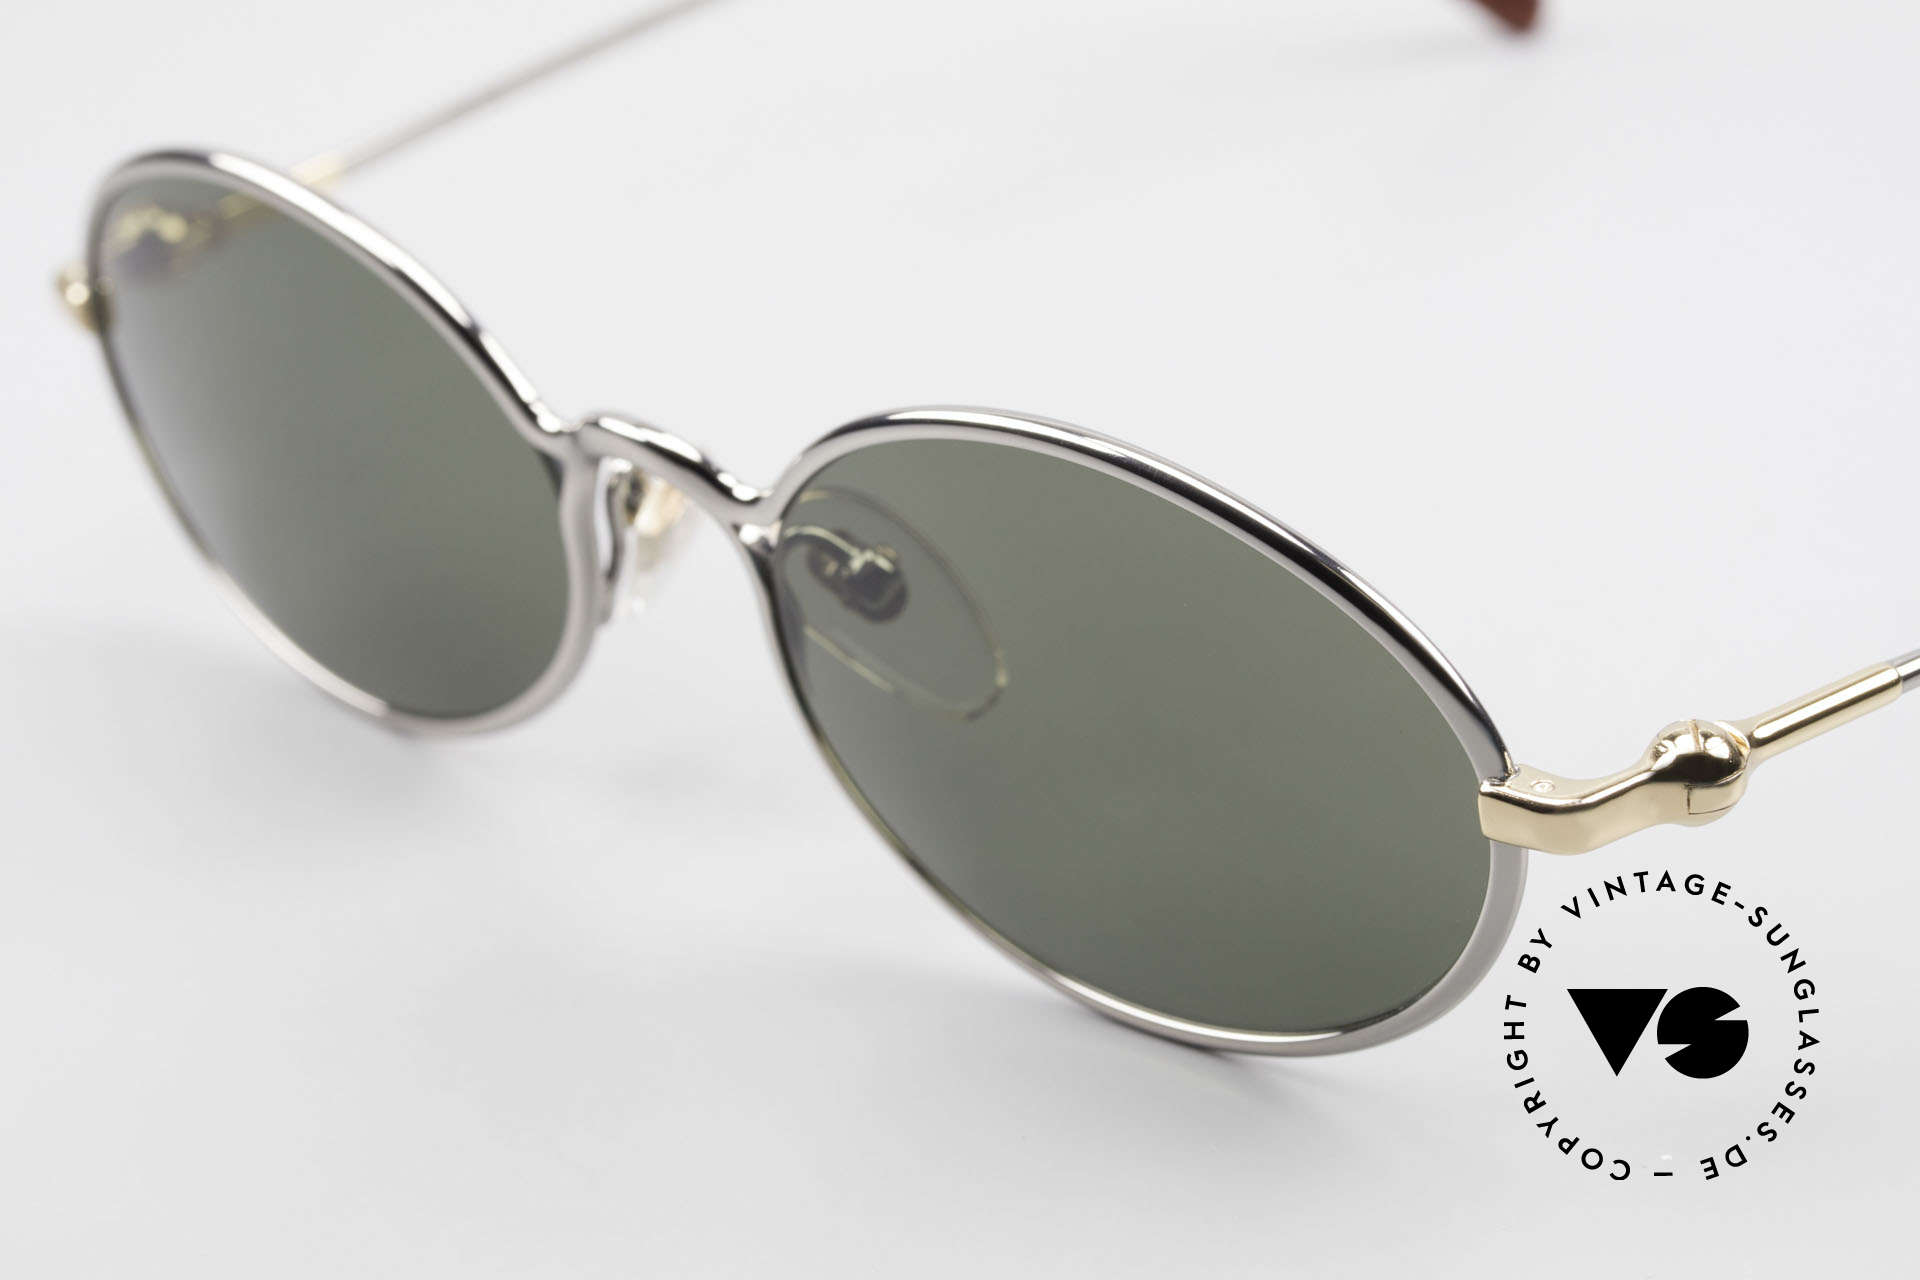 Aston Martin AM13 Oval Shades James Bond Style, precious rarity (with serial no.) + orig. Aston Martin case, Made for Men